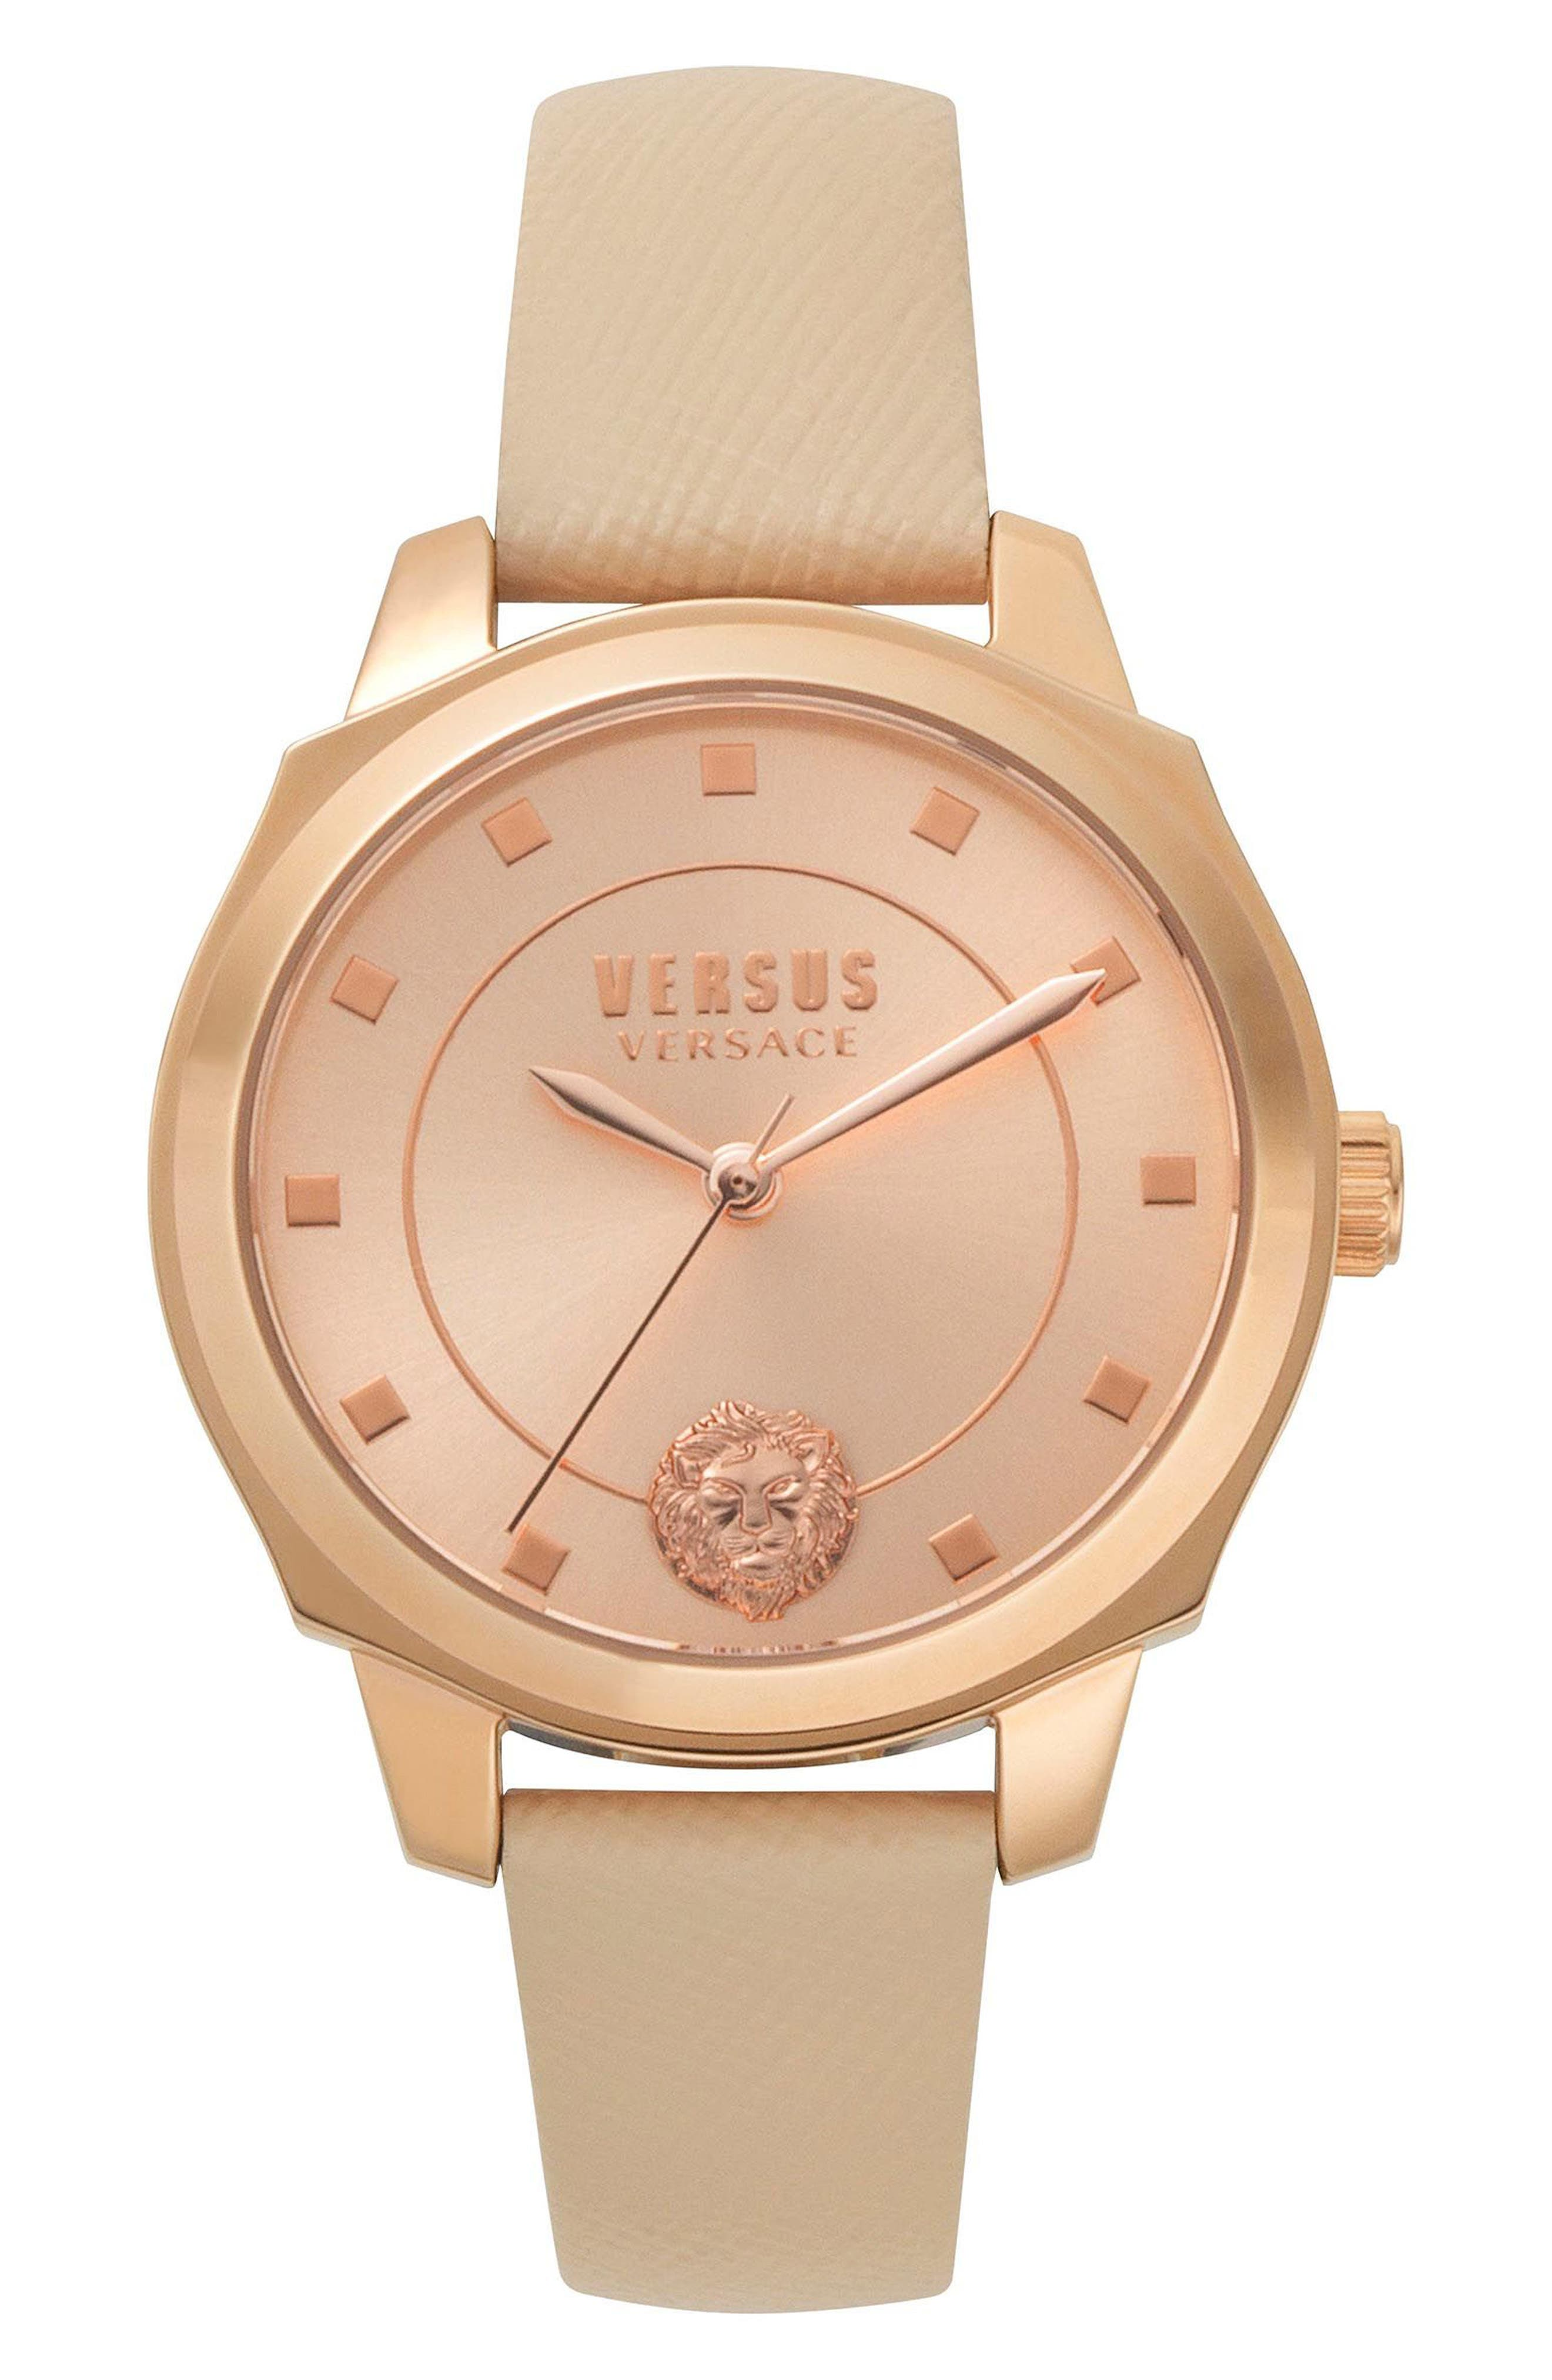 VERSUS by Versace Chelsea Leather Strap Watch, 34mm,                         Main,                         color, Tan/ Rose Gold